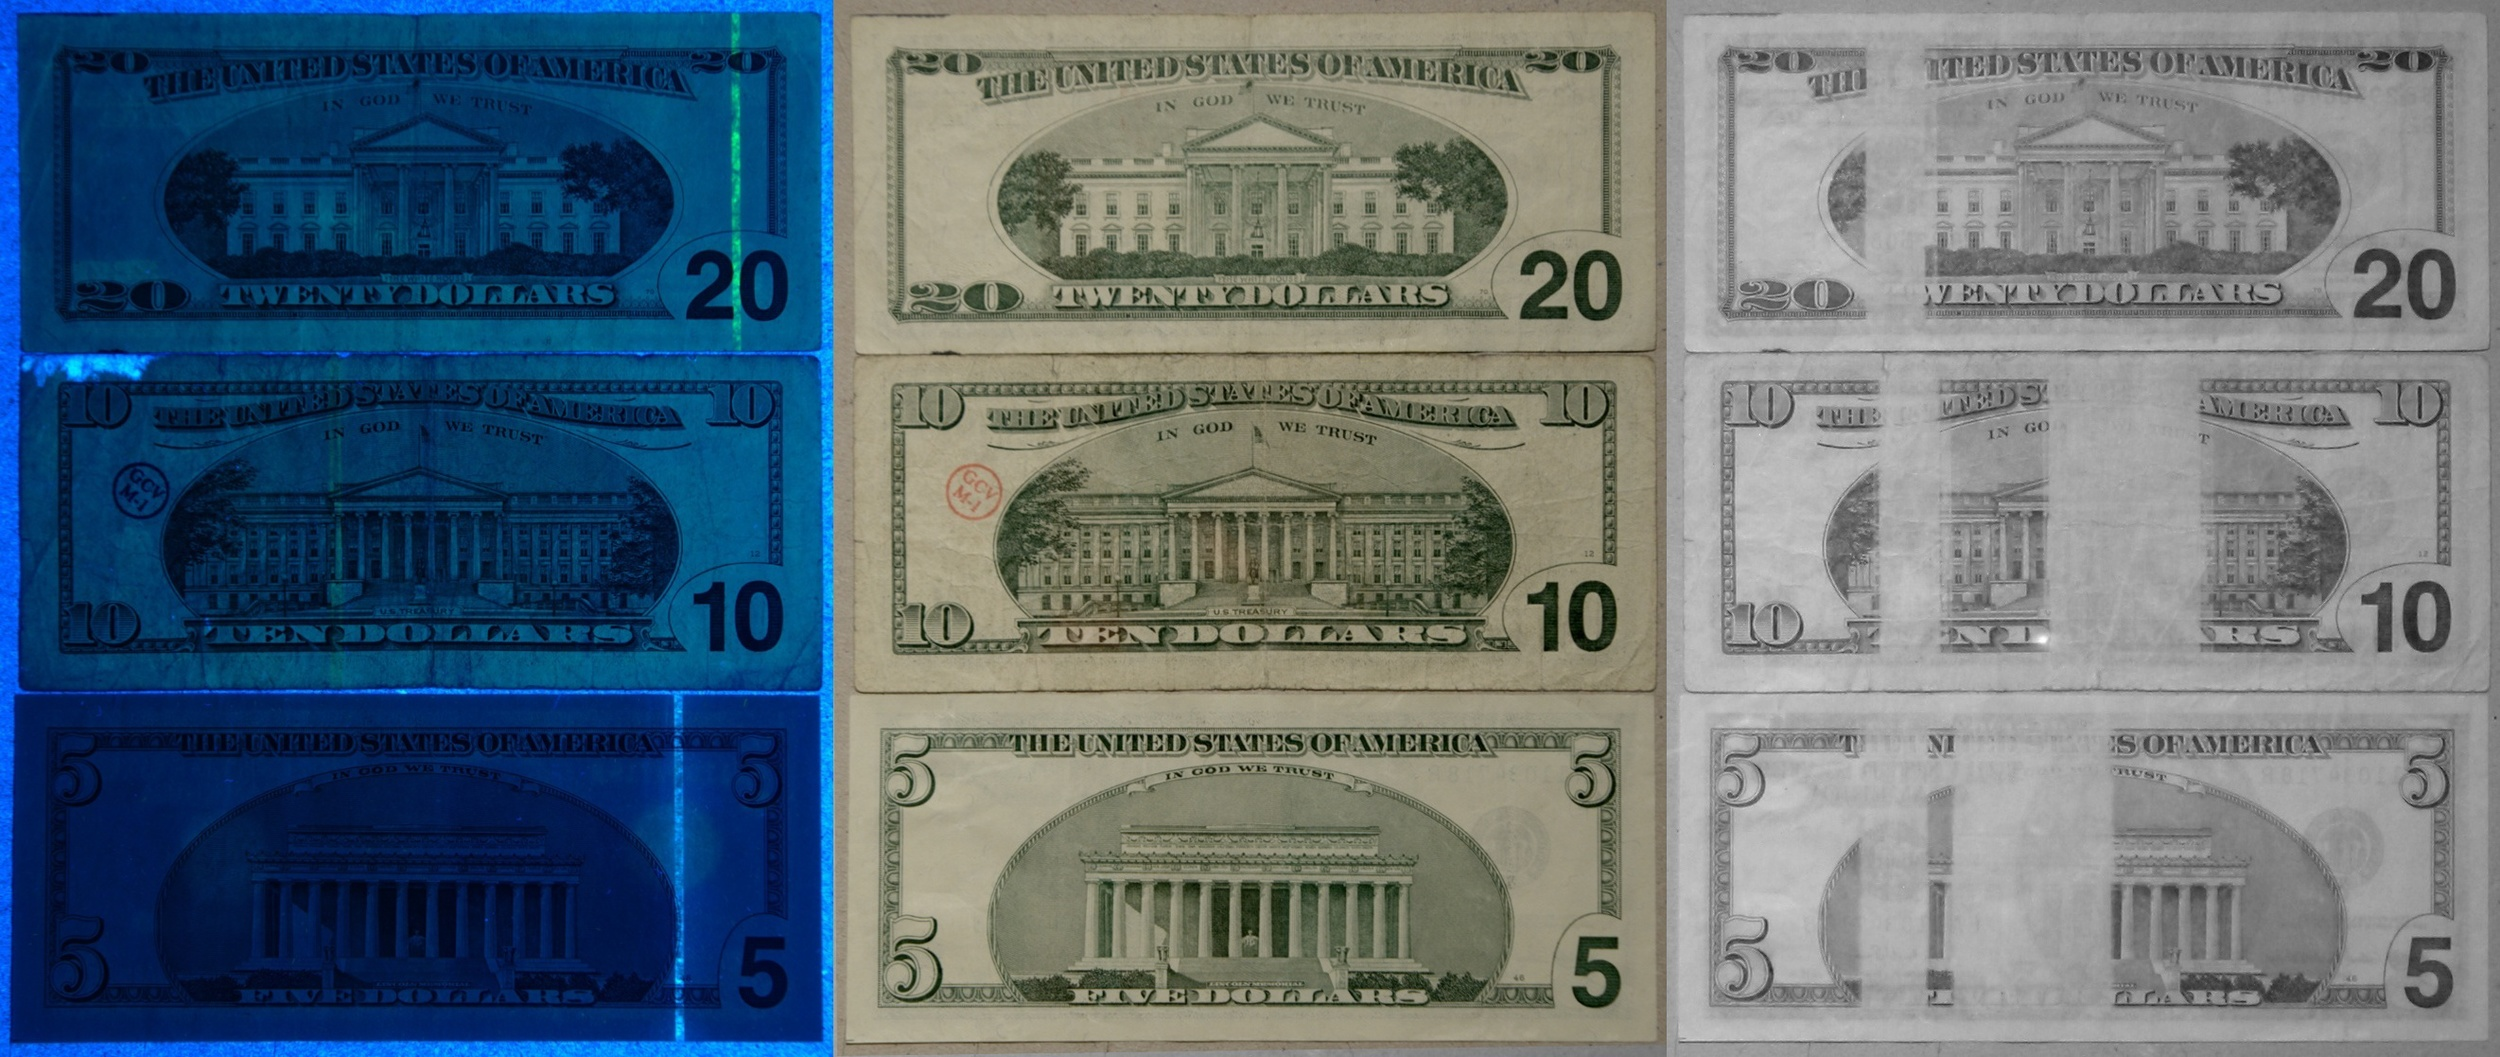 Countering Counterfeit Currency Gretchen Stangier Certified Financial Planner Portland Oregon